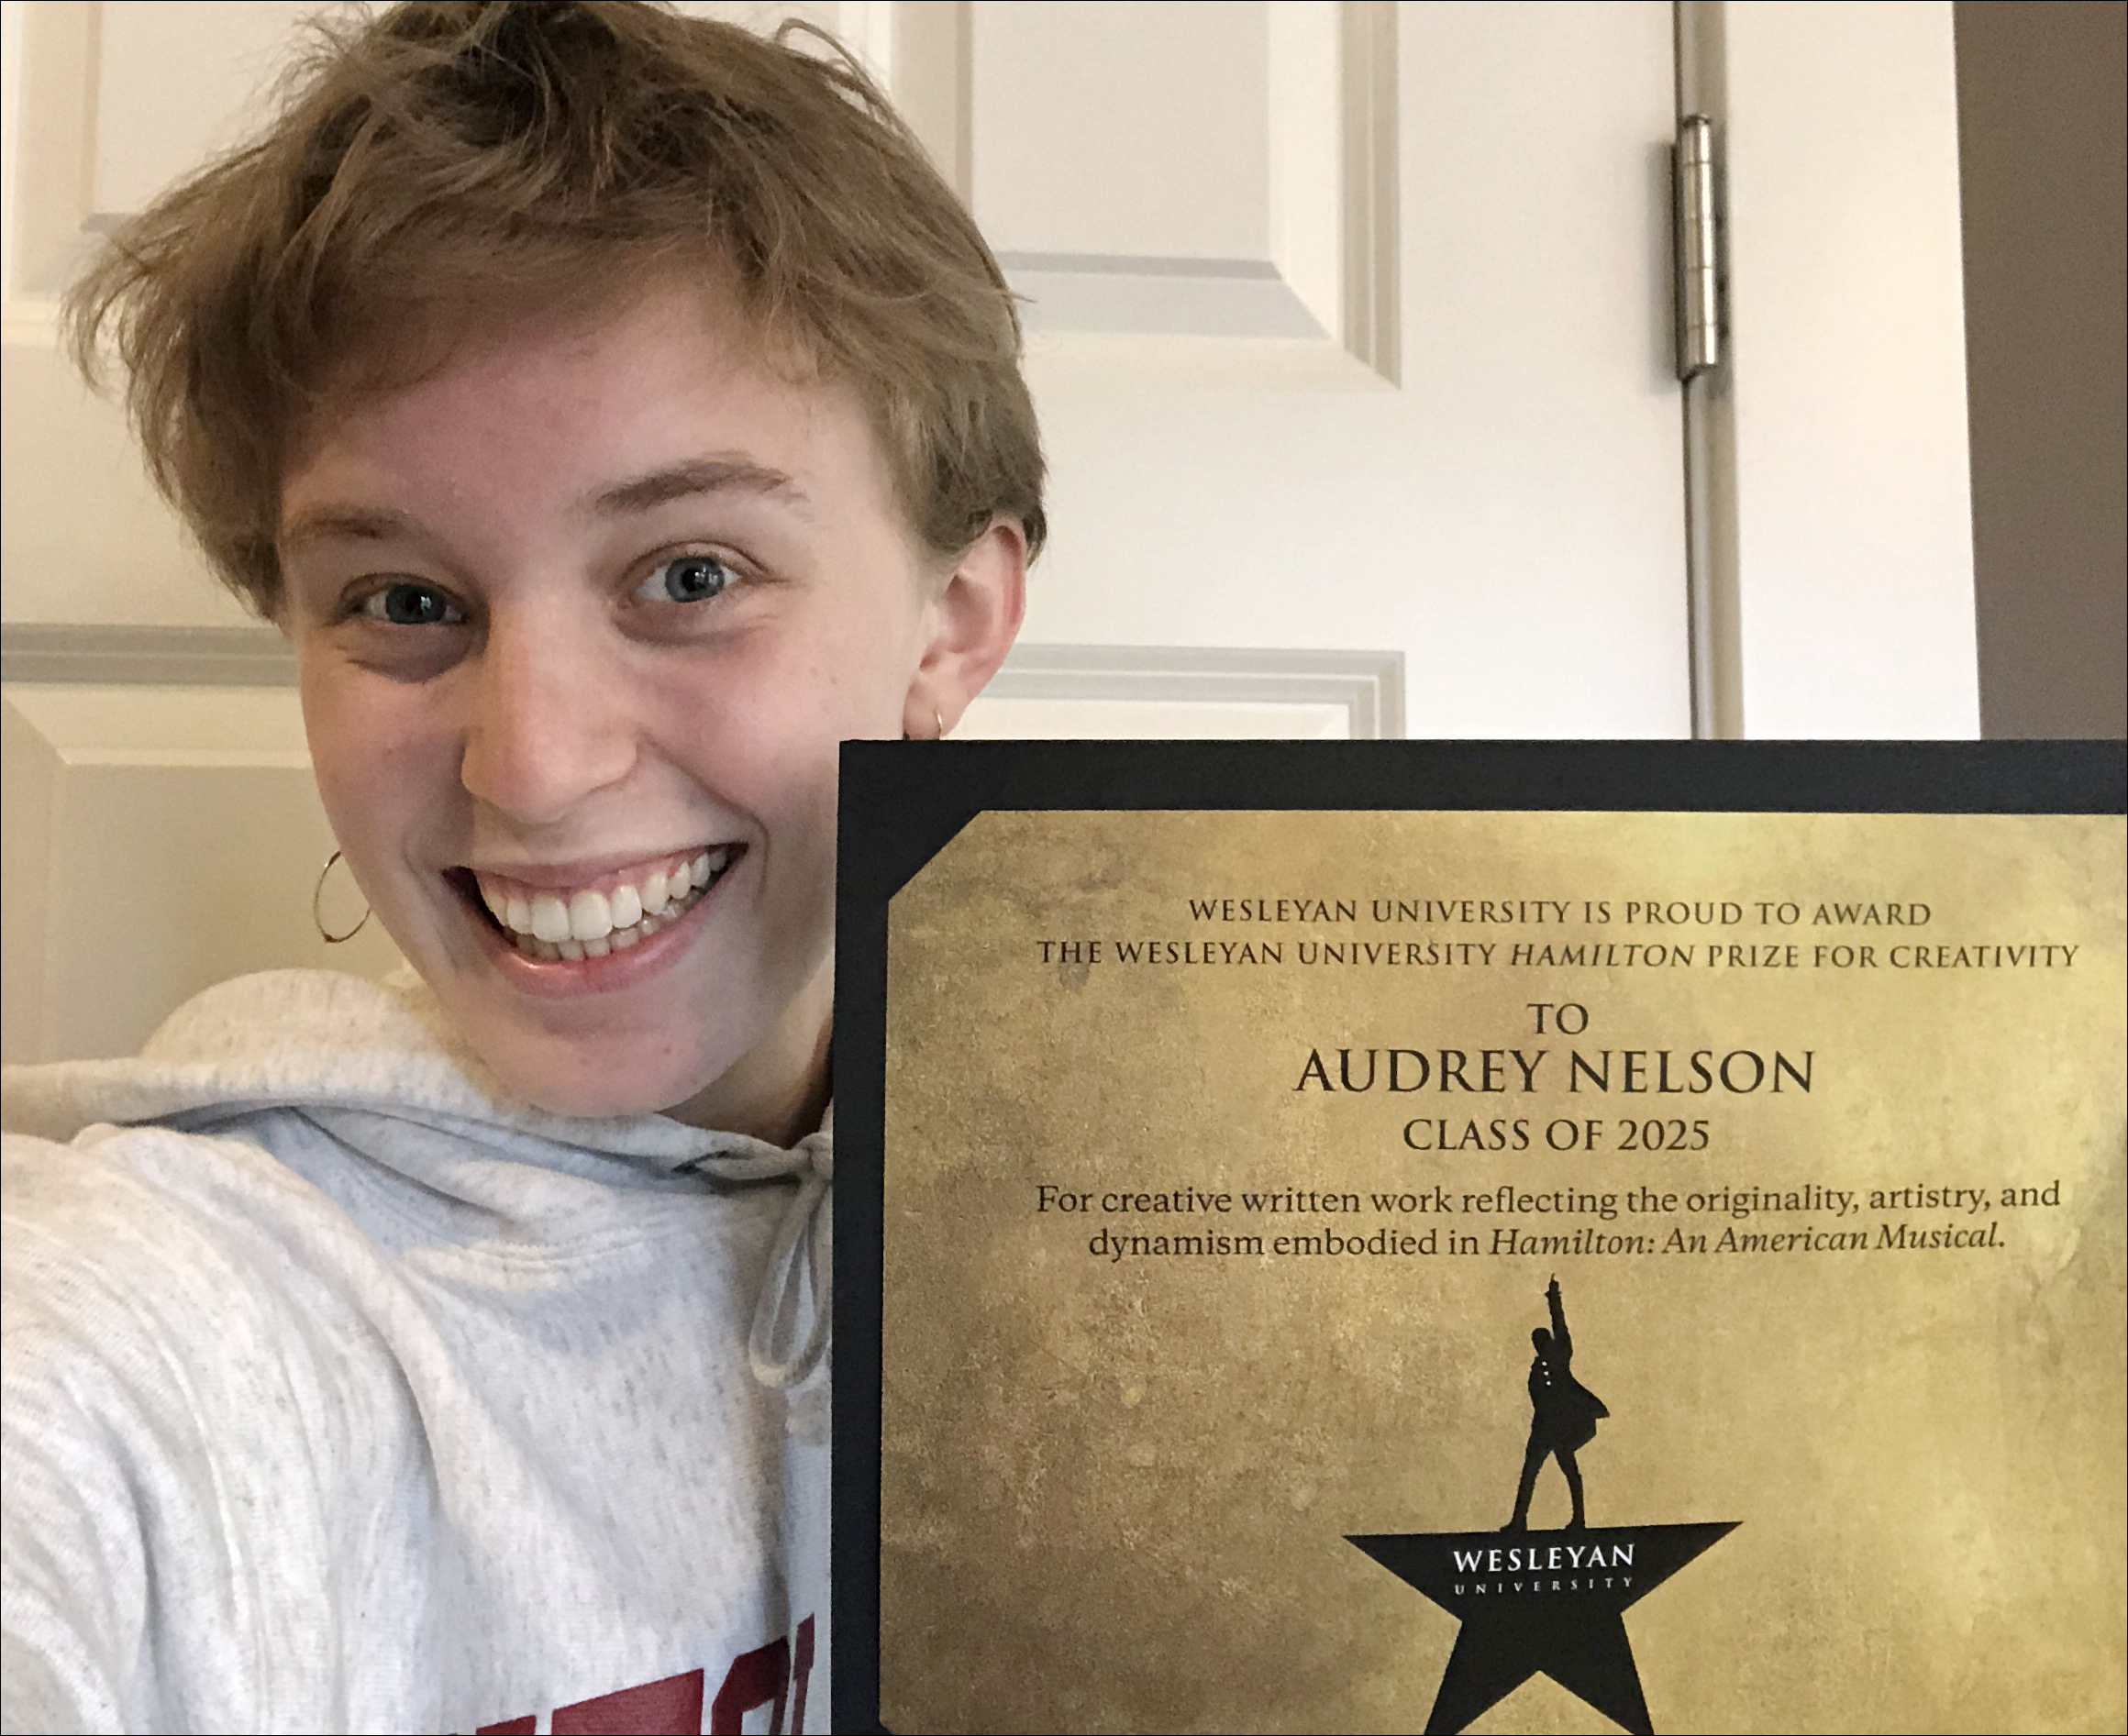 Audrey Nelson '25 is the recipient of the 2021 HamiltonPrize for Creativity, which comes with a four-year, full-tuition scholarship to attend Wesleyan University.